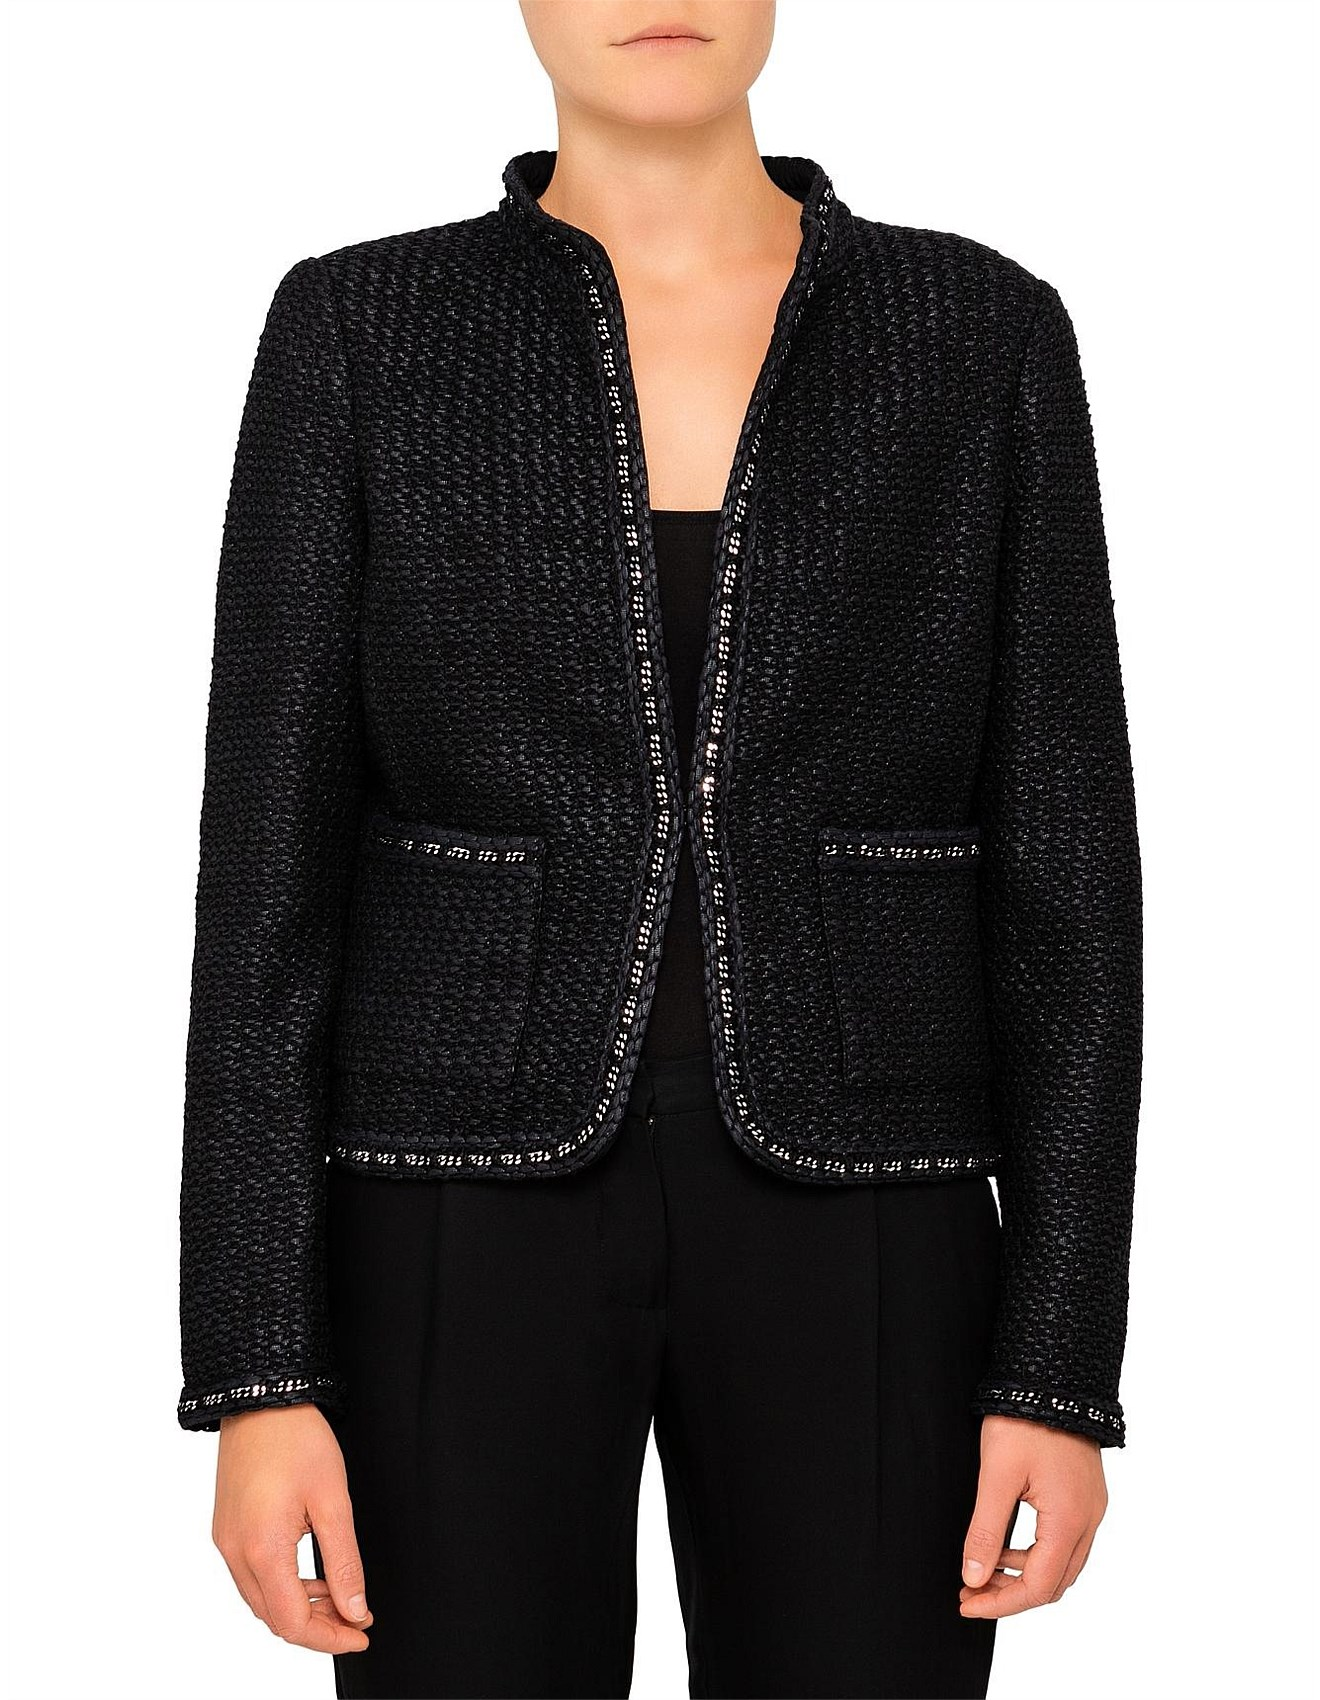 9f22726c1a78a St John - The New Standard Collarless Tweed Jacket With Hardware